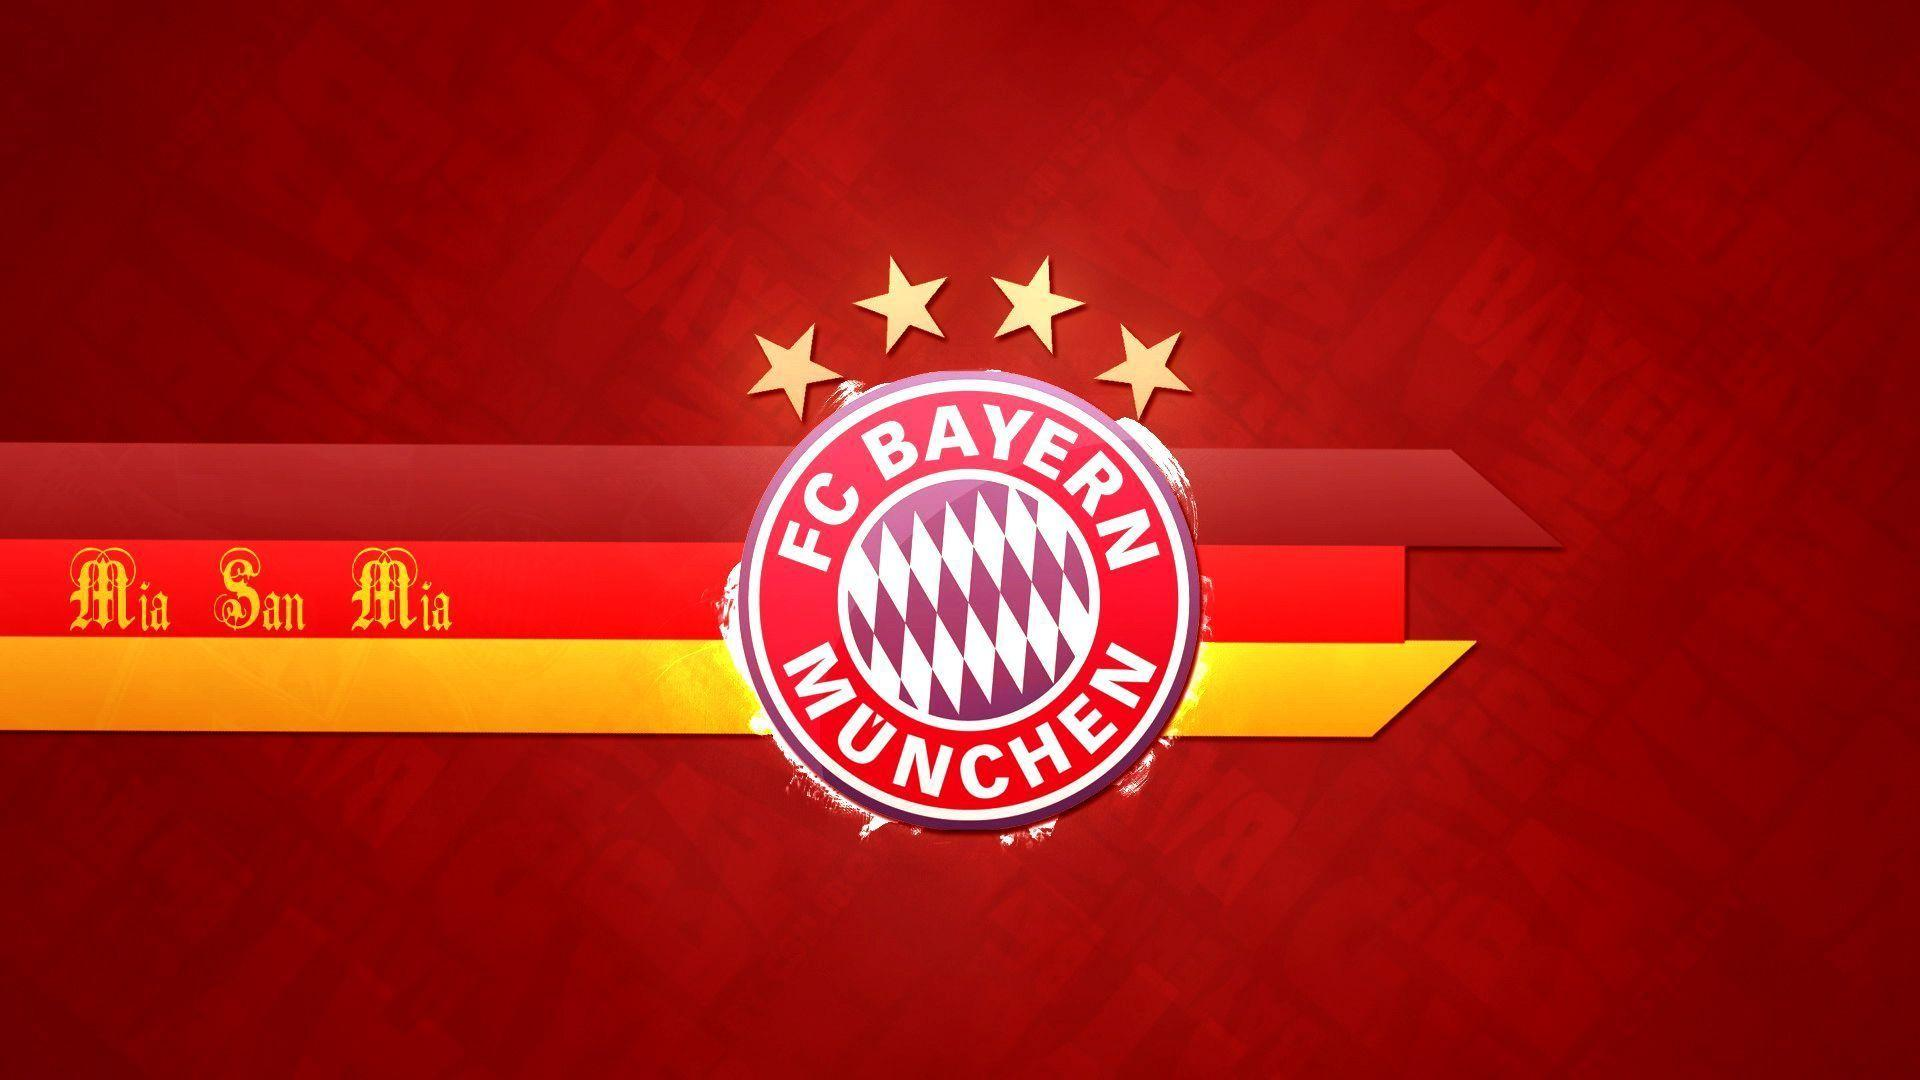 bayern munich wallpapers wallpaper cave. Black Bedroom Furniture Sets. Home Design Ideas